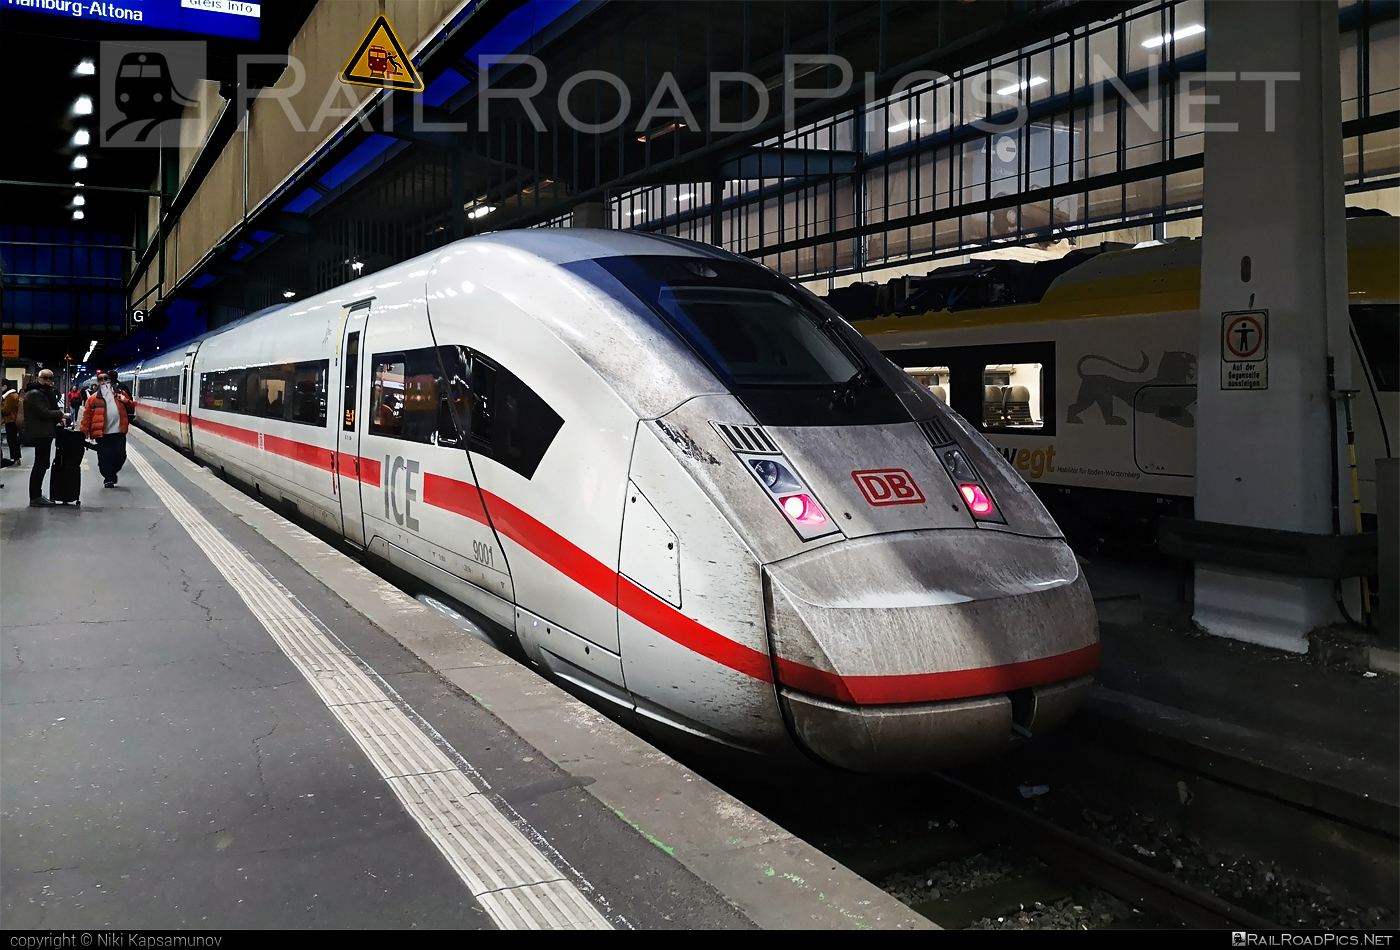 Siemens ICE 4 - 9001 operated by Deutsche Bahn / DB AG #db #dbice4 #ice4 #siemens #siemensice4